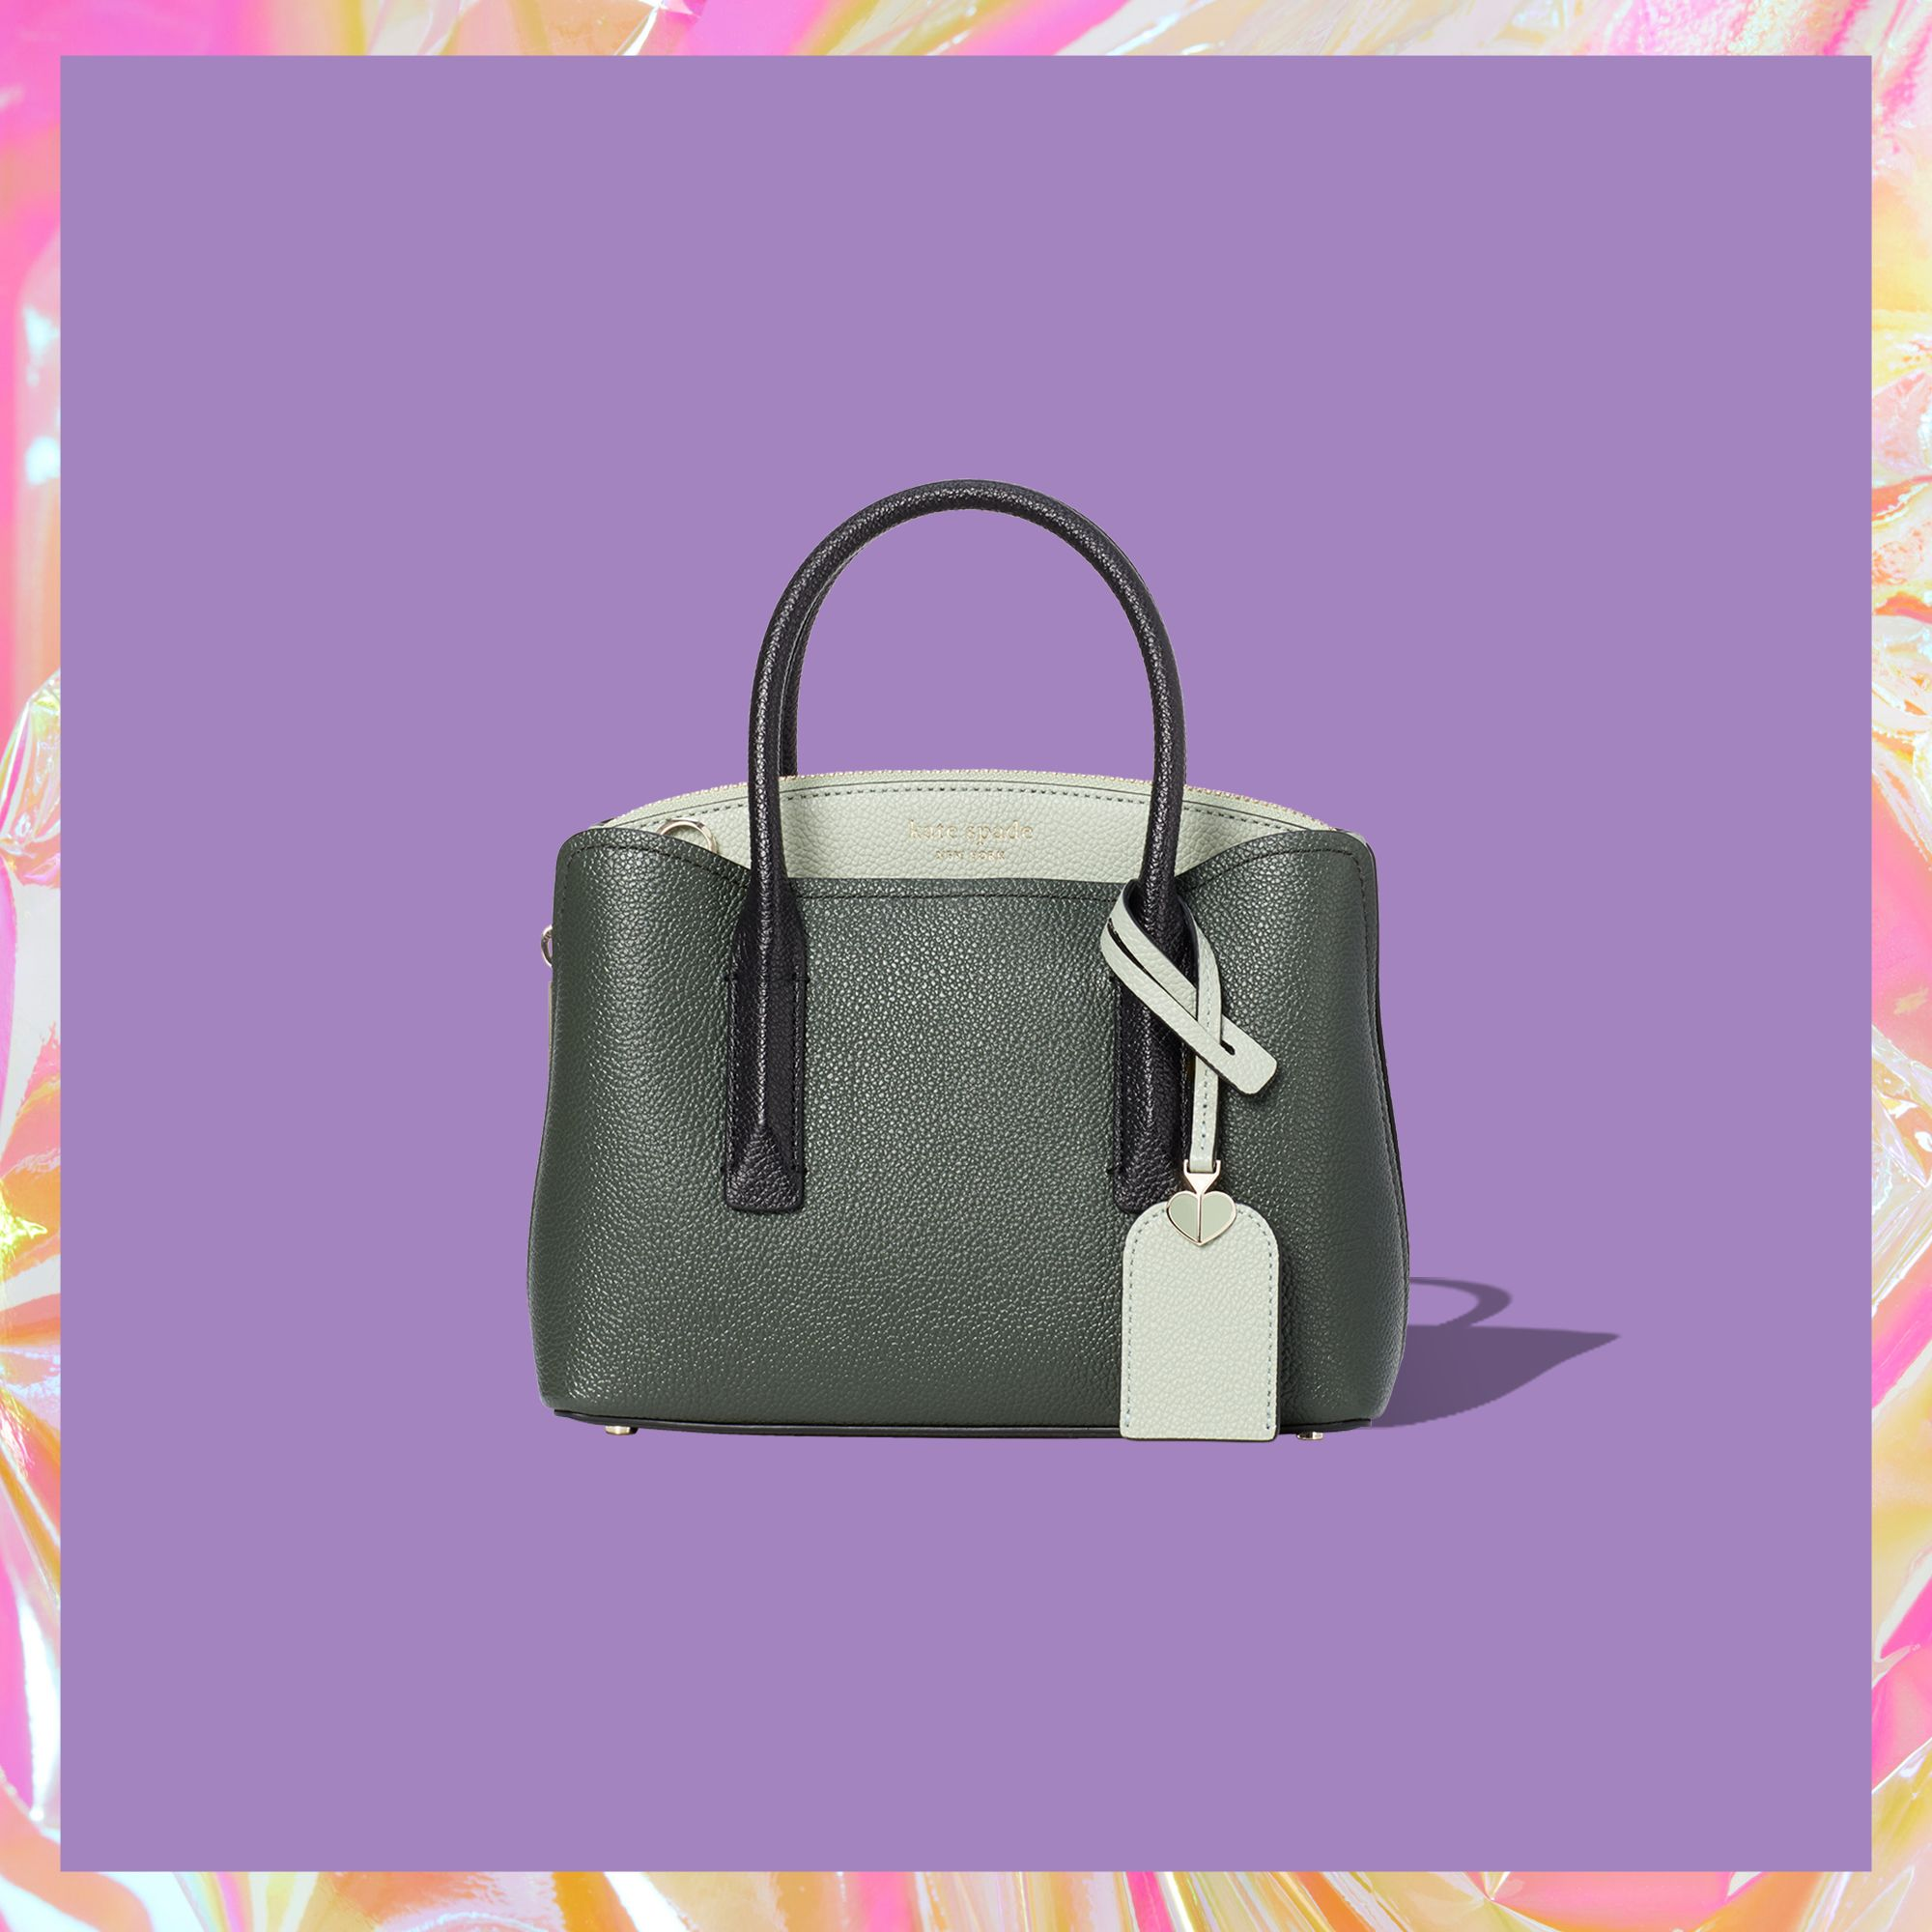 enjoy an additional 40% off sale styles at katespade.com